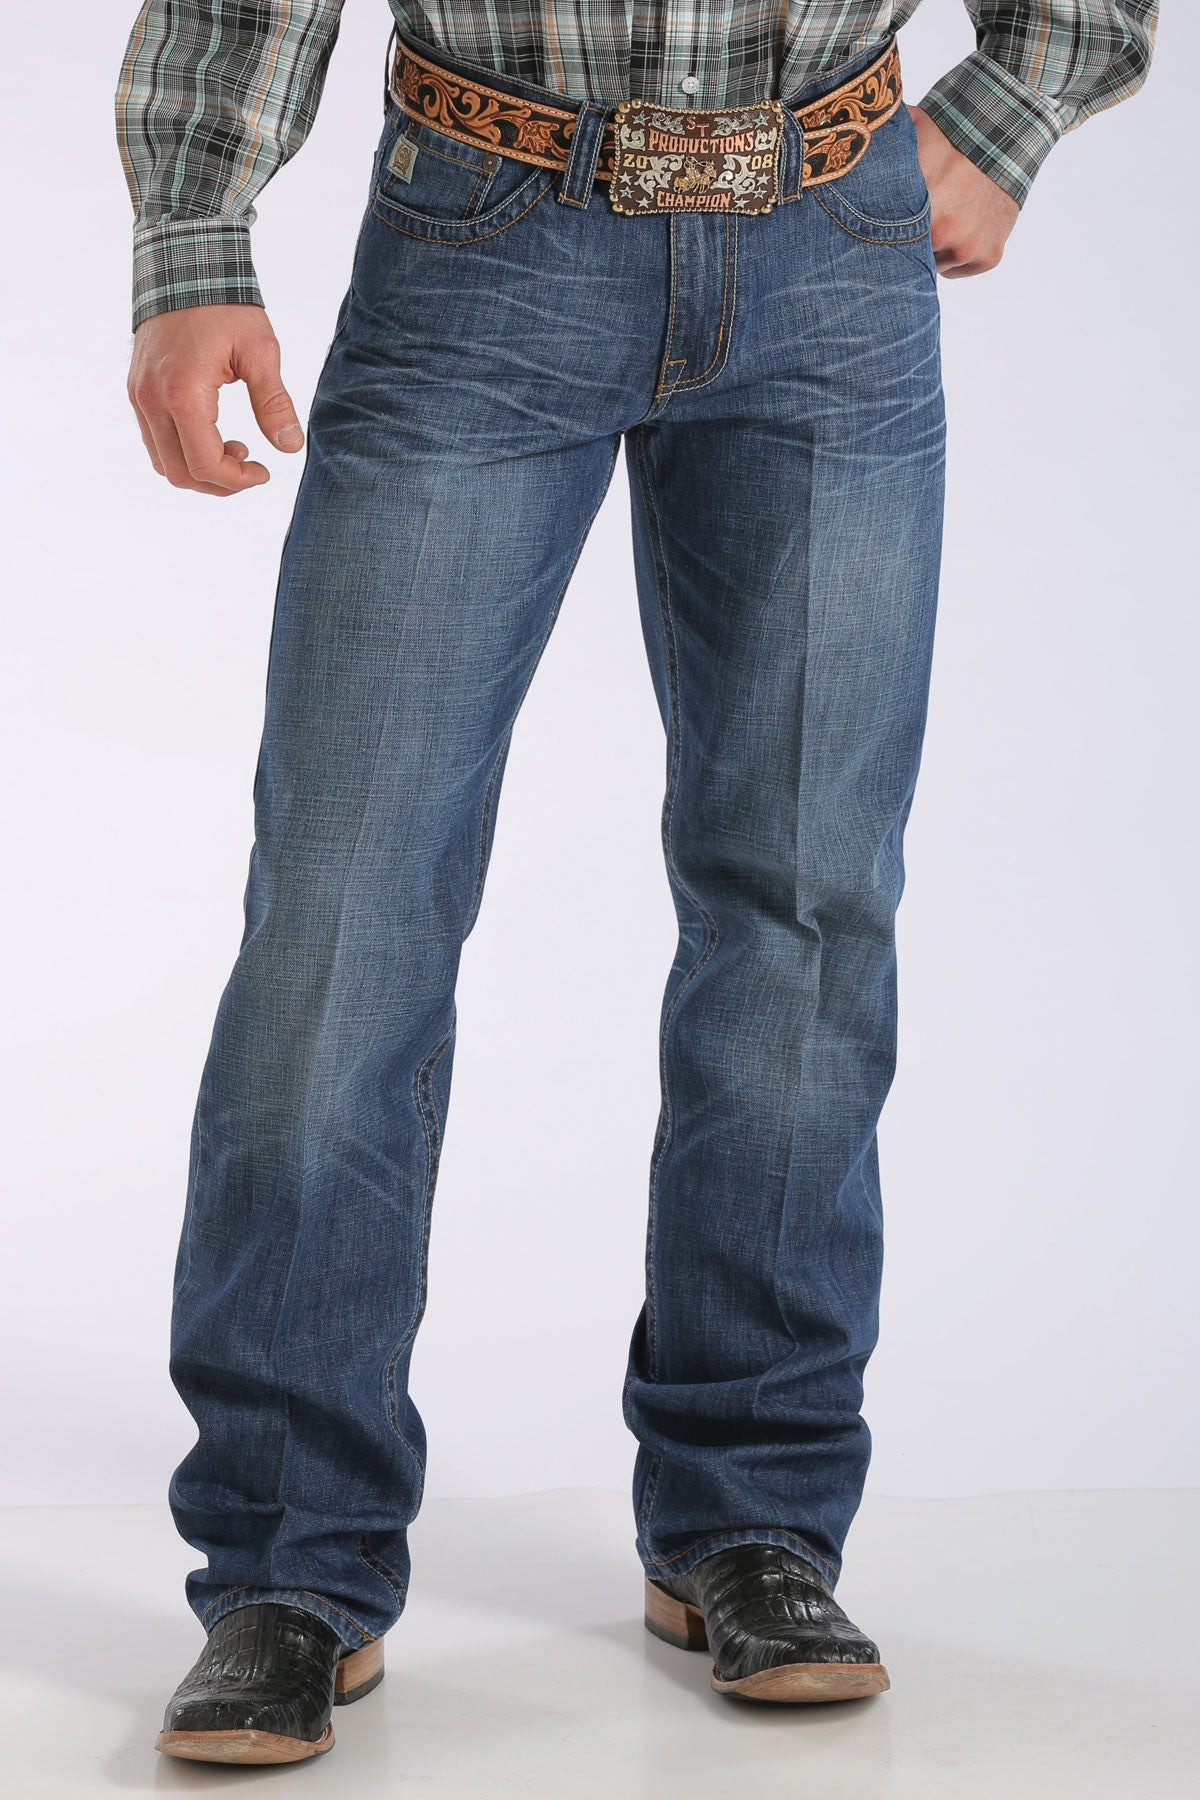 Cinch Grant Men's Relaxed Fit Jean - Lazy J Ranch Wear